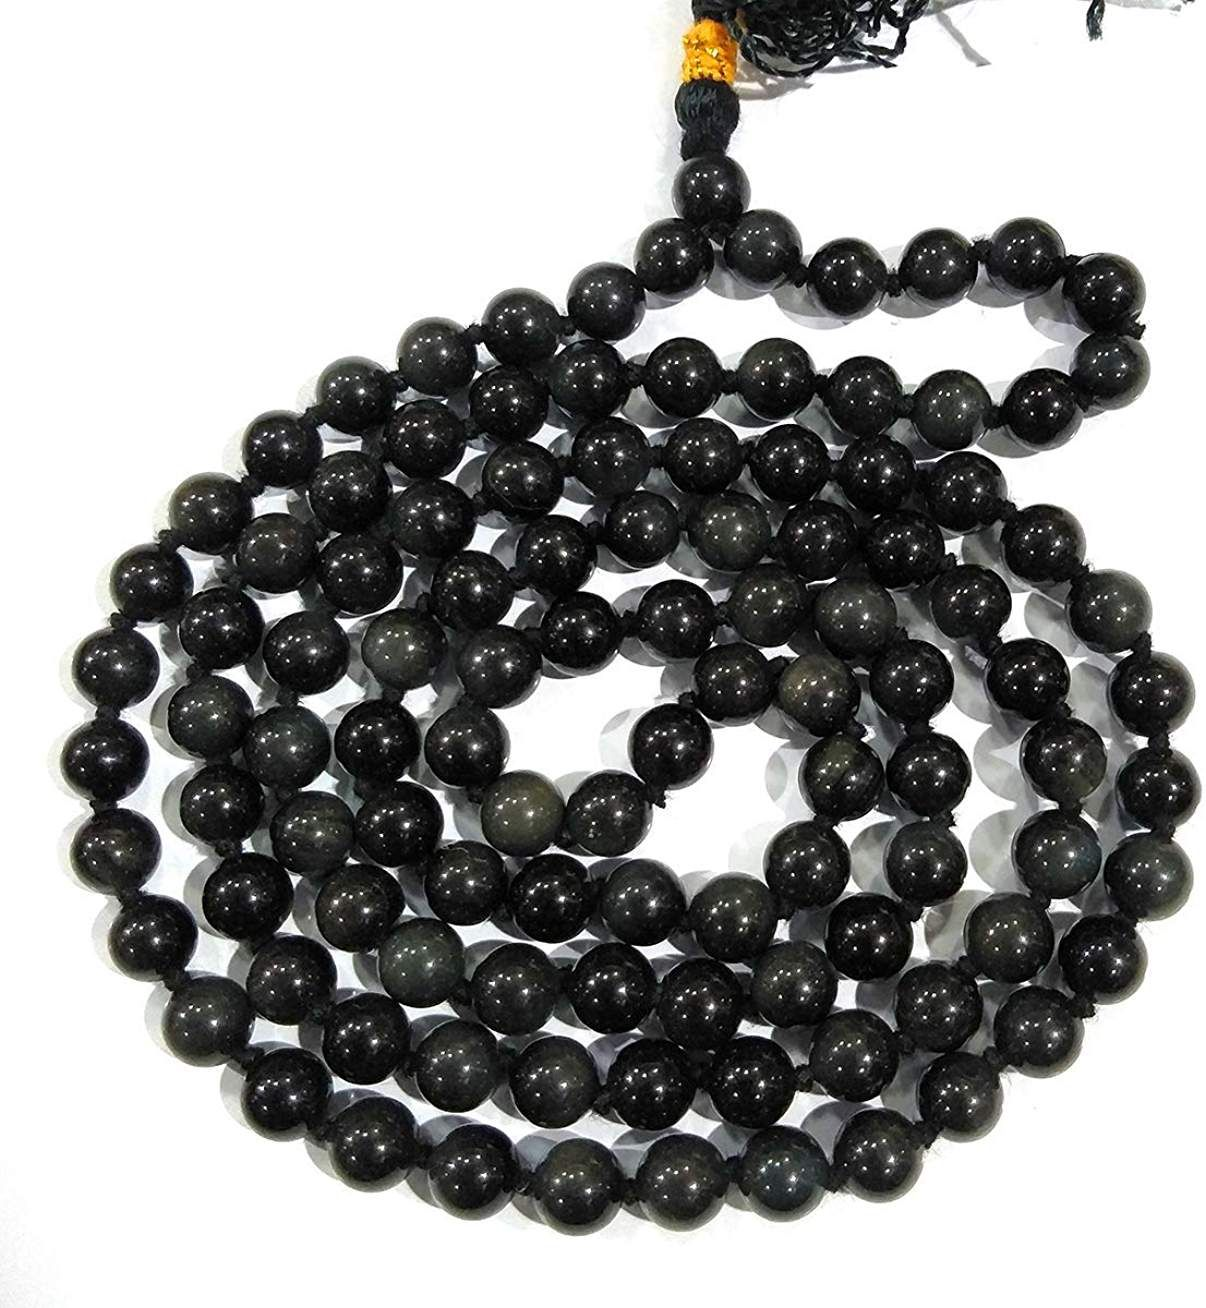 Reiki Crystal Products Natural Black Tourmaline Mala 6mm for Reiki Healing and Vastu Correction Protection Concentration Spirituality and Increasing Creativity